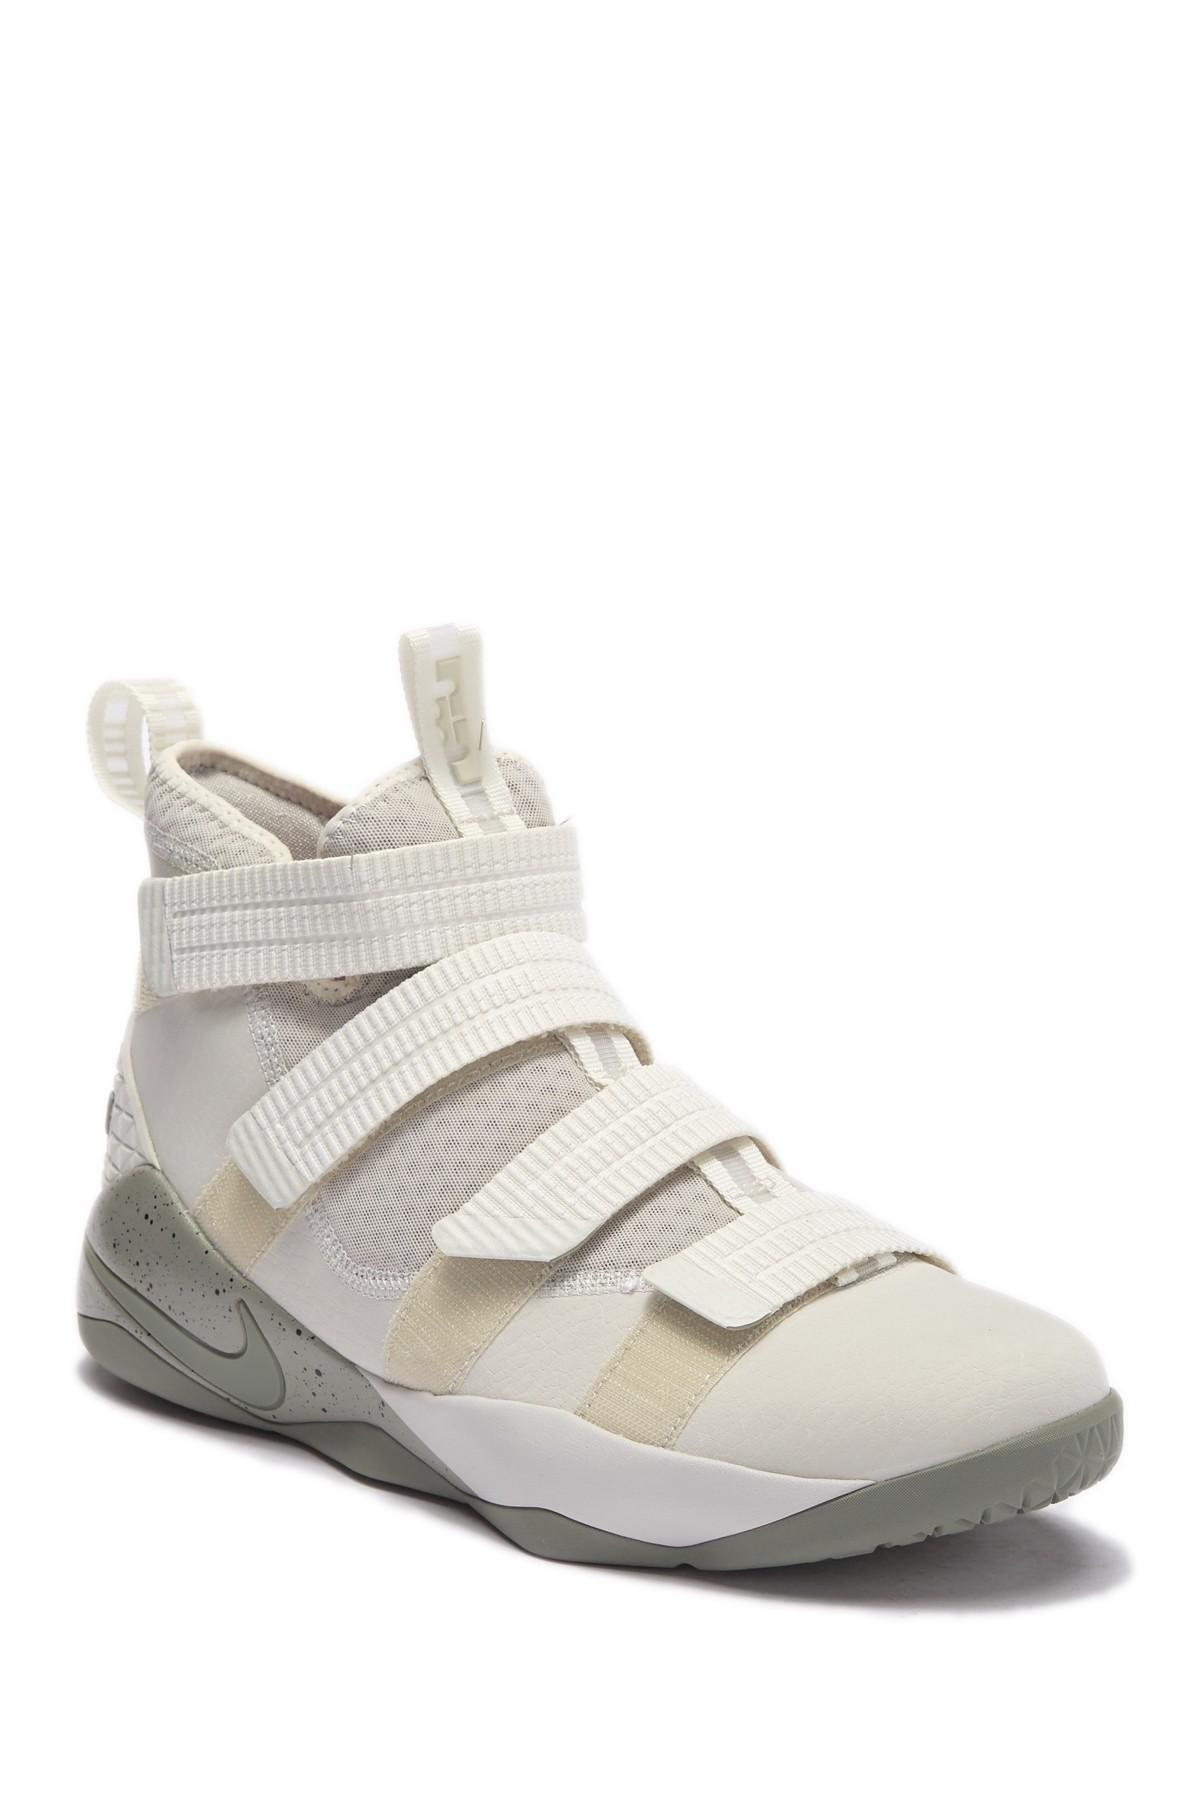 61a06403594 Lyst - Nike Lebron Soldier Xi Sfg Basketball Shoe for Men